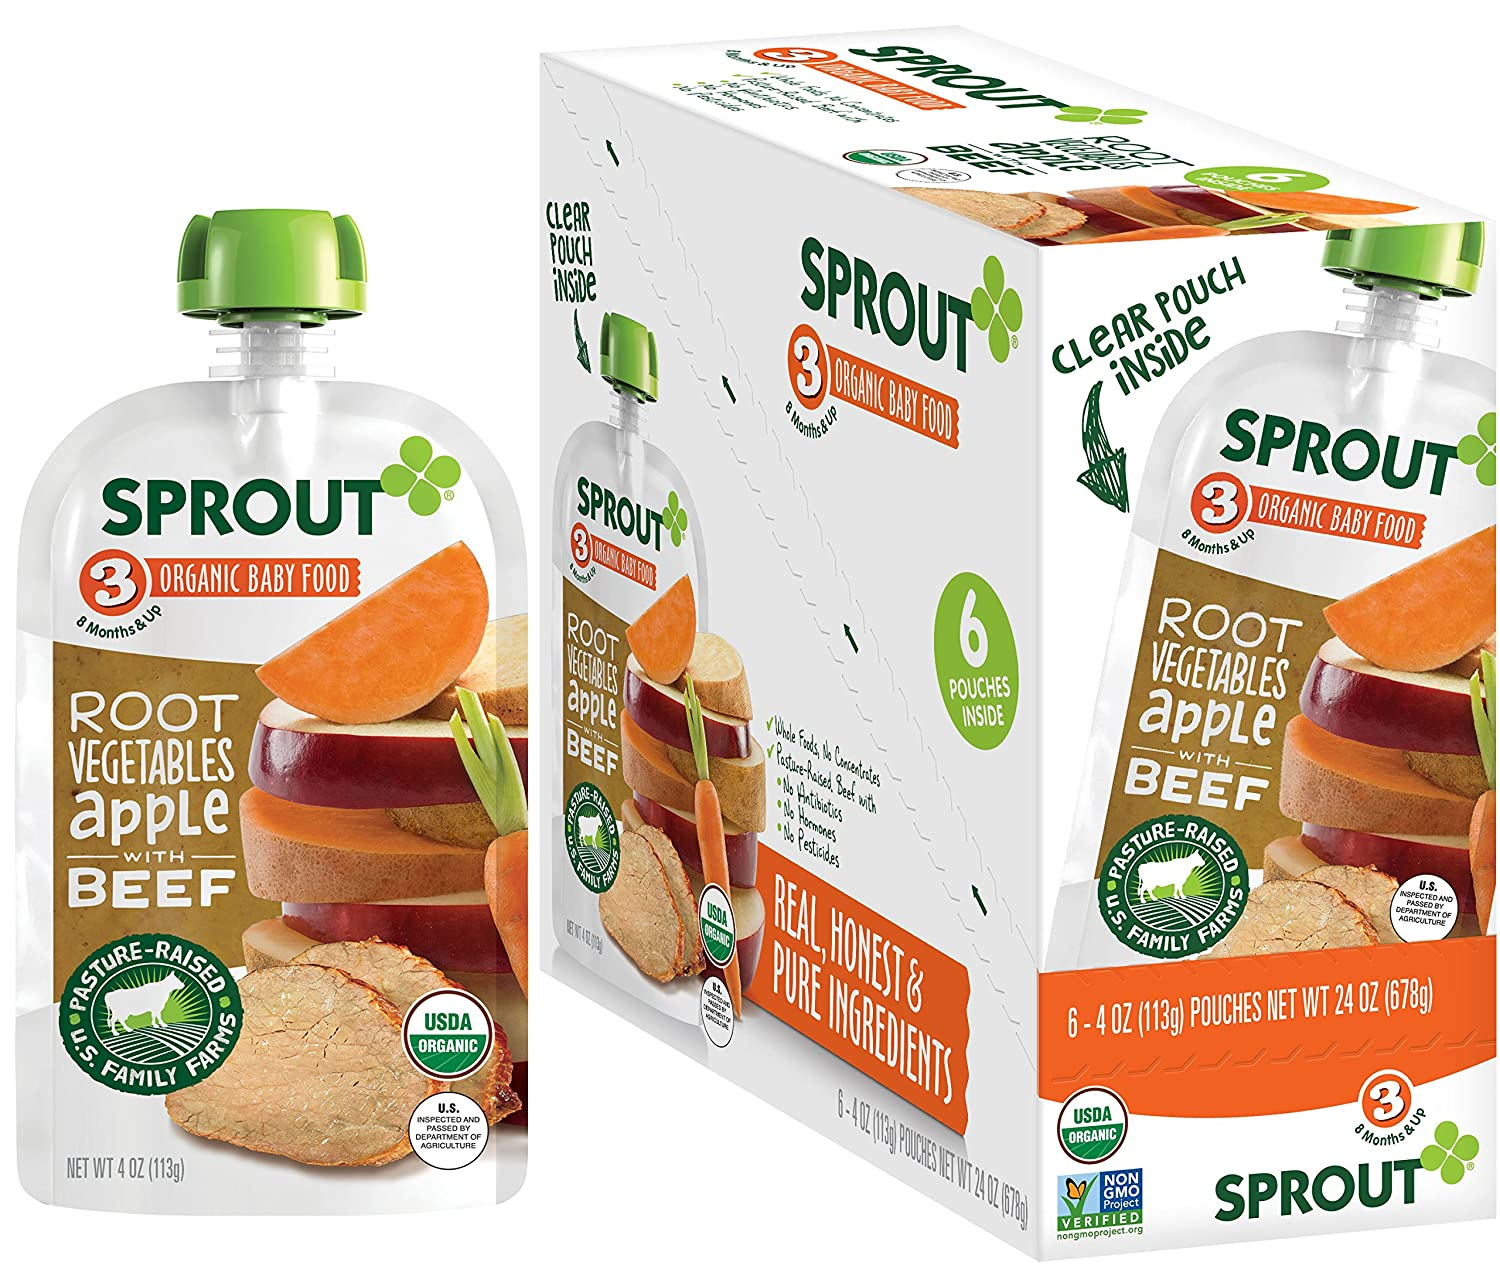 Sprout Organic Stage 3 Baby Food Pouches, Root Vegetables Apple w/ Beef, 4 Ounce (Pack of 12)